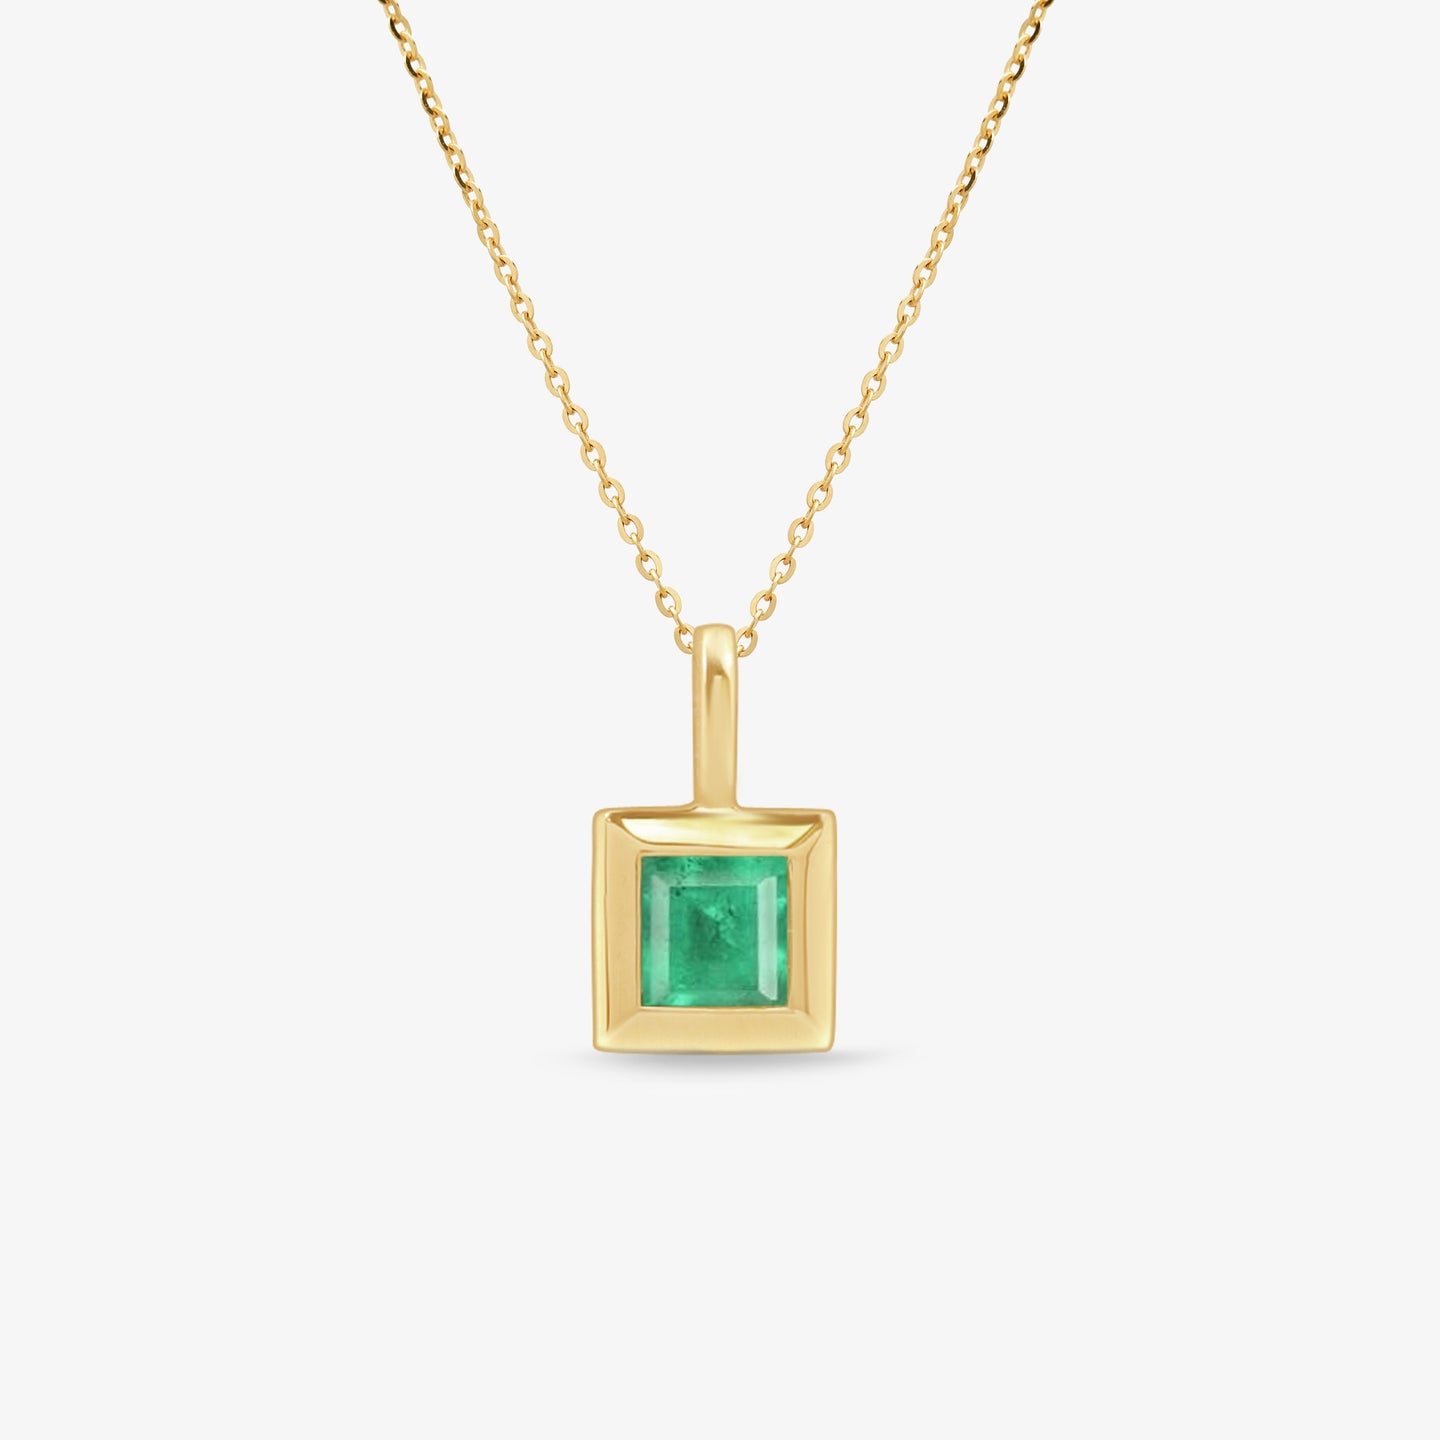 Square Emerald Pendant Necklace With Gold Chain - estellacollection